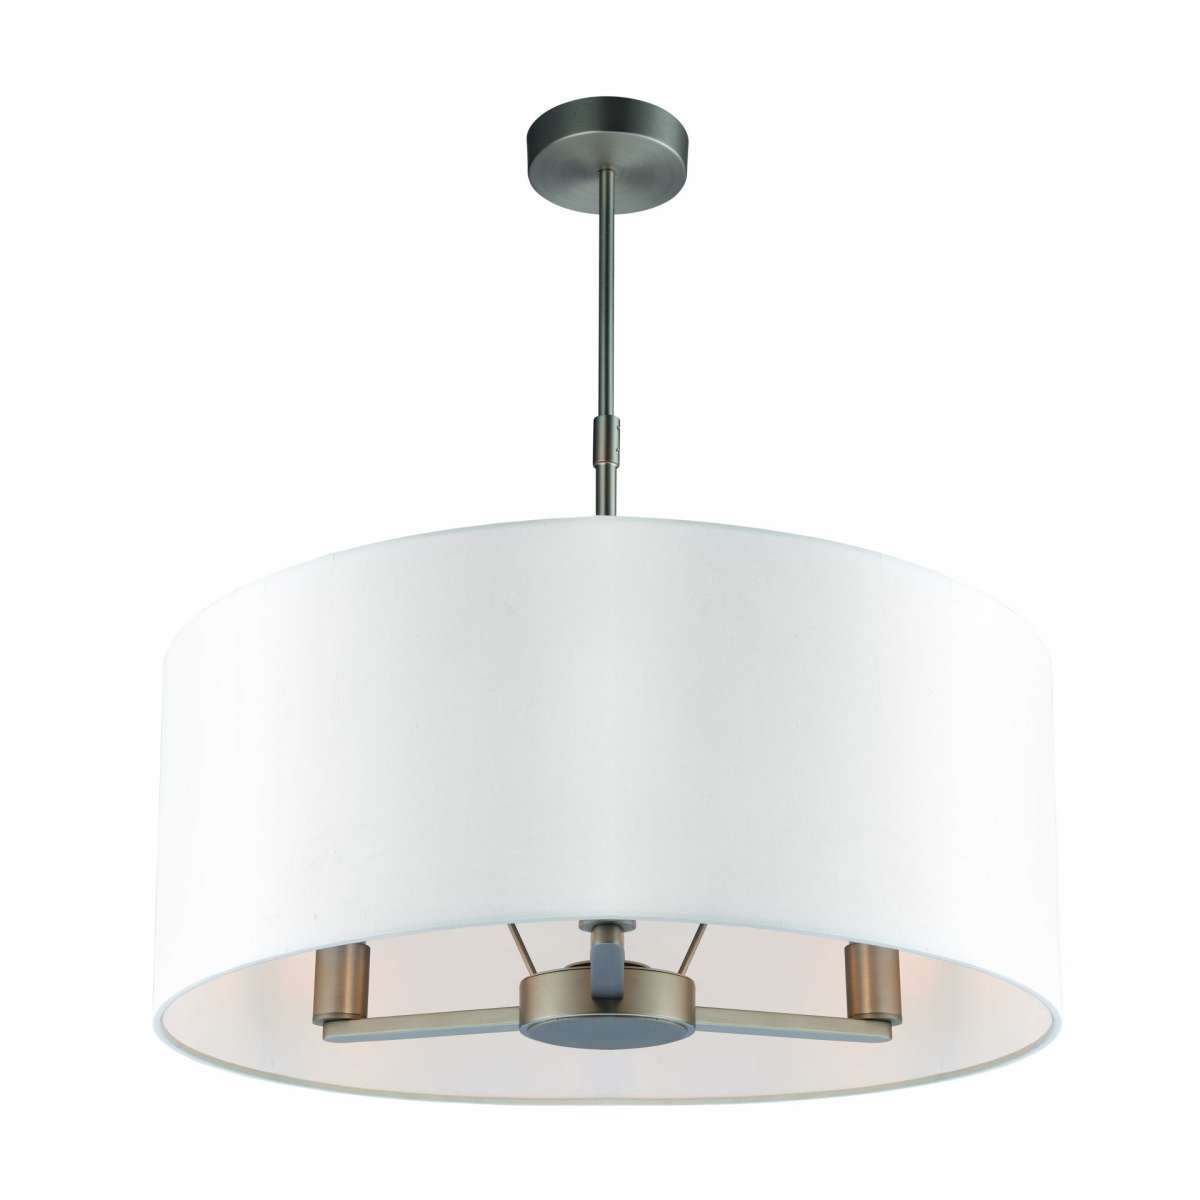 Daley 3 Light Drum Pendant in Nickel C/W Large White Shade